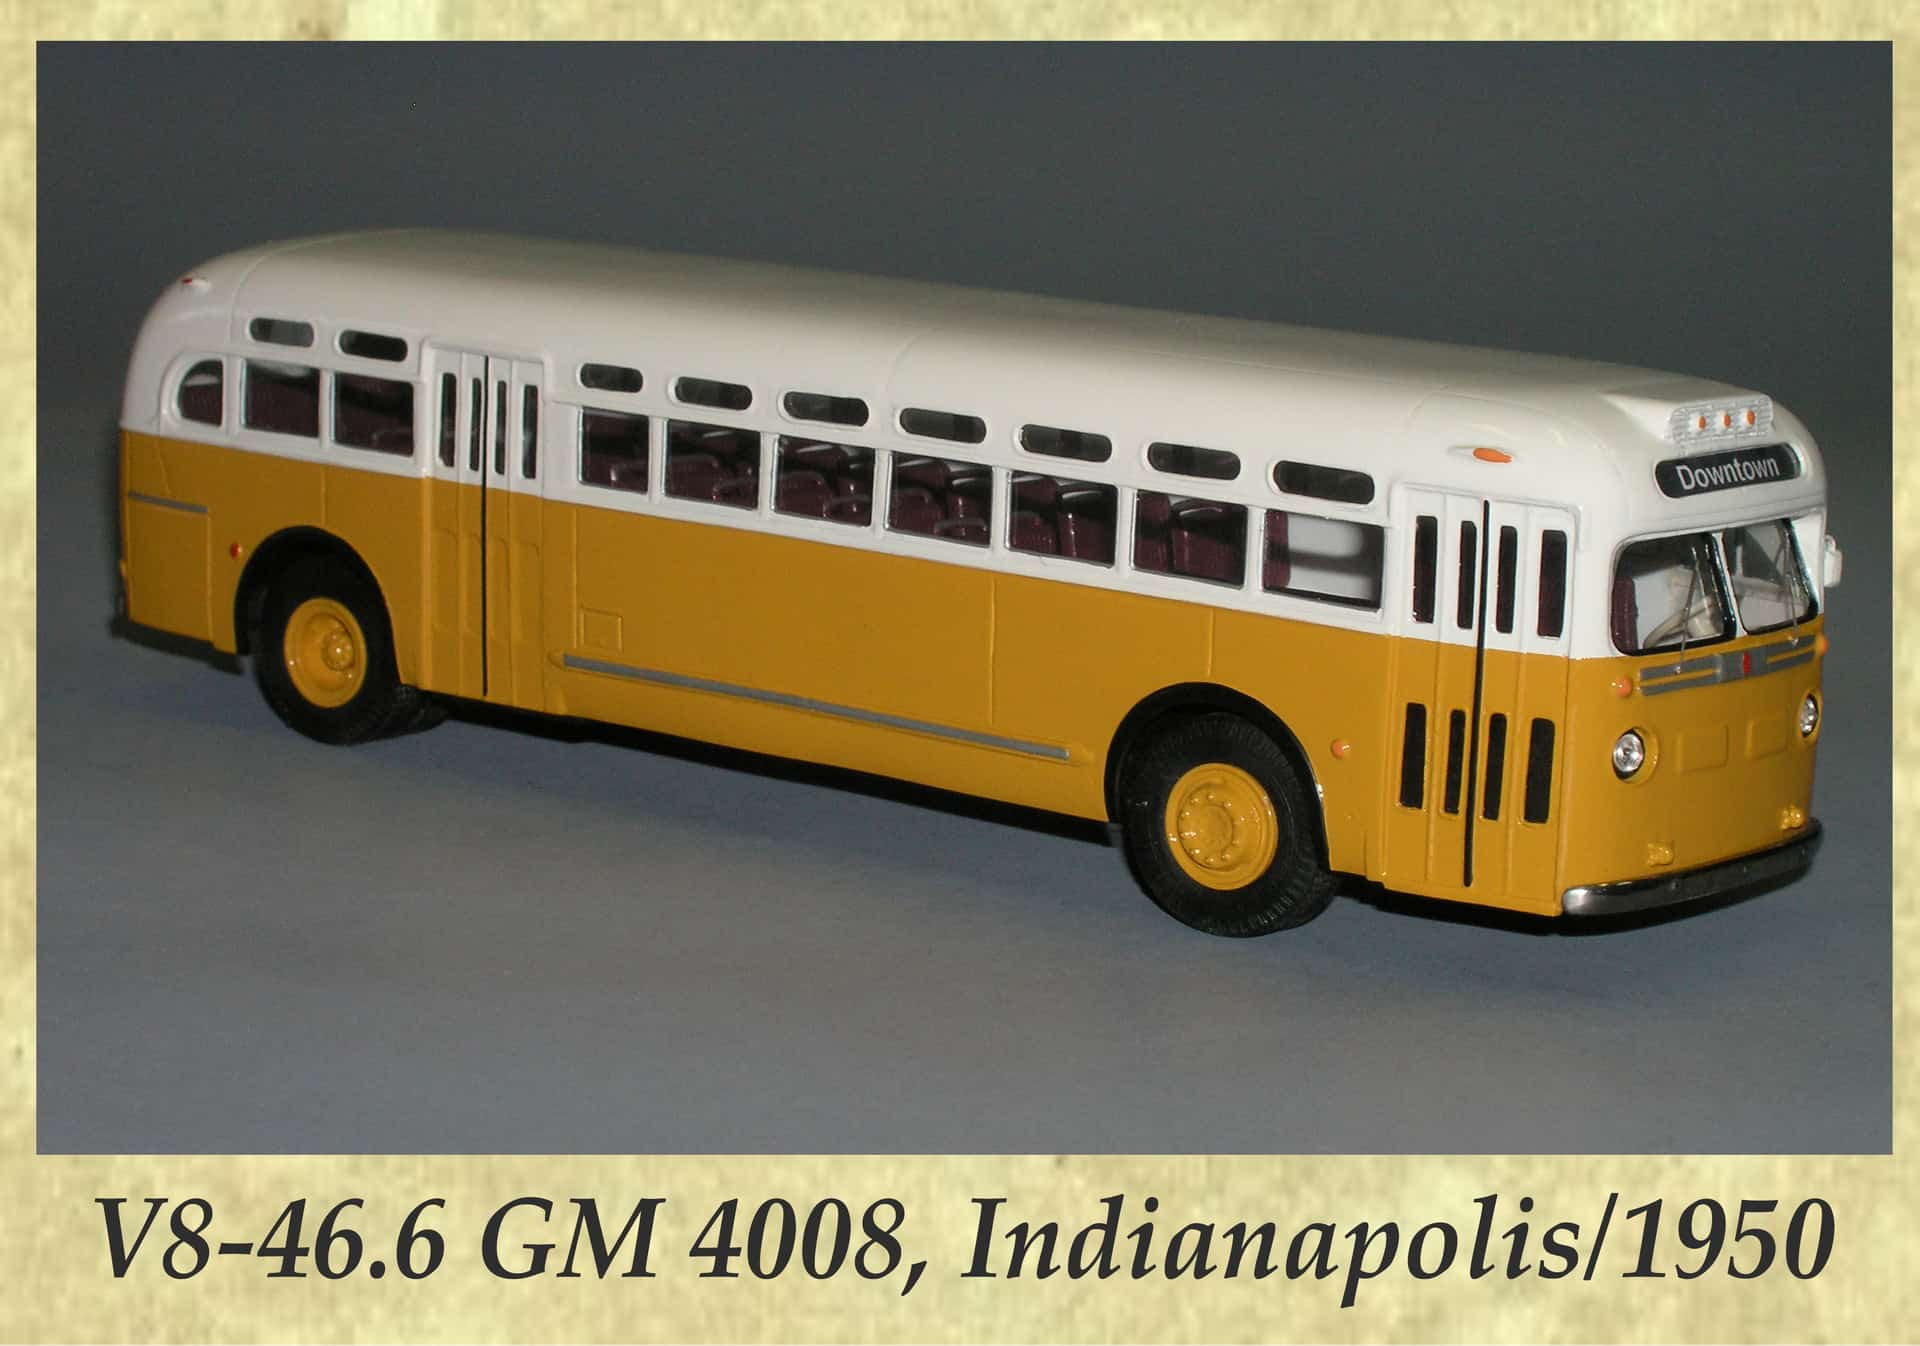 V8-46.6 GM 4008, Indianapolisn1950